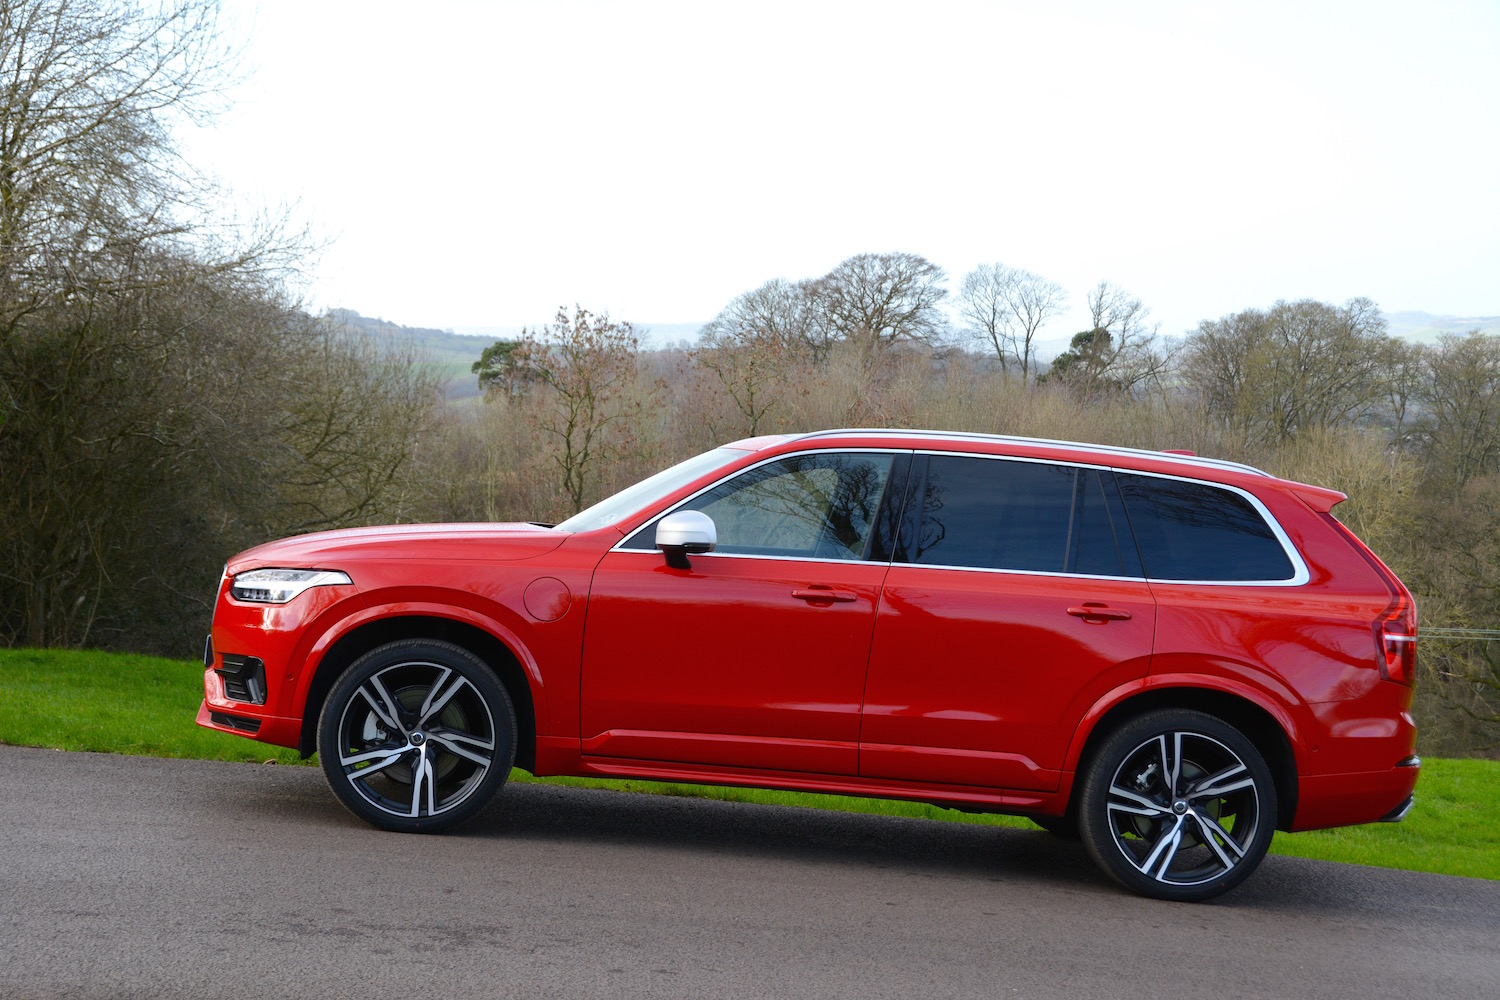 Volvo XC90 T8 Twin Engine First Drive - GreenCarGuide.co.uk